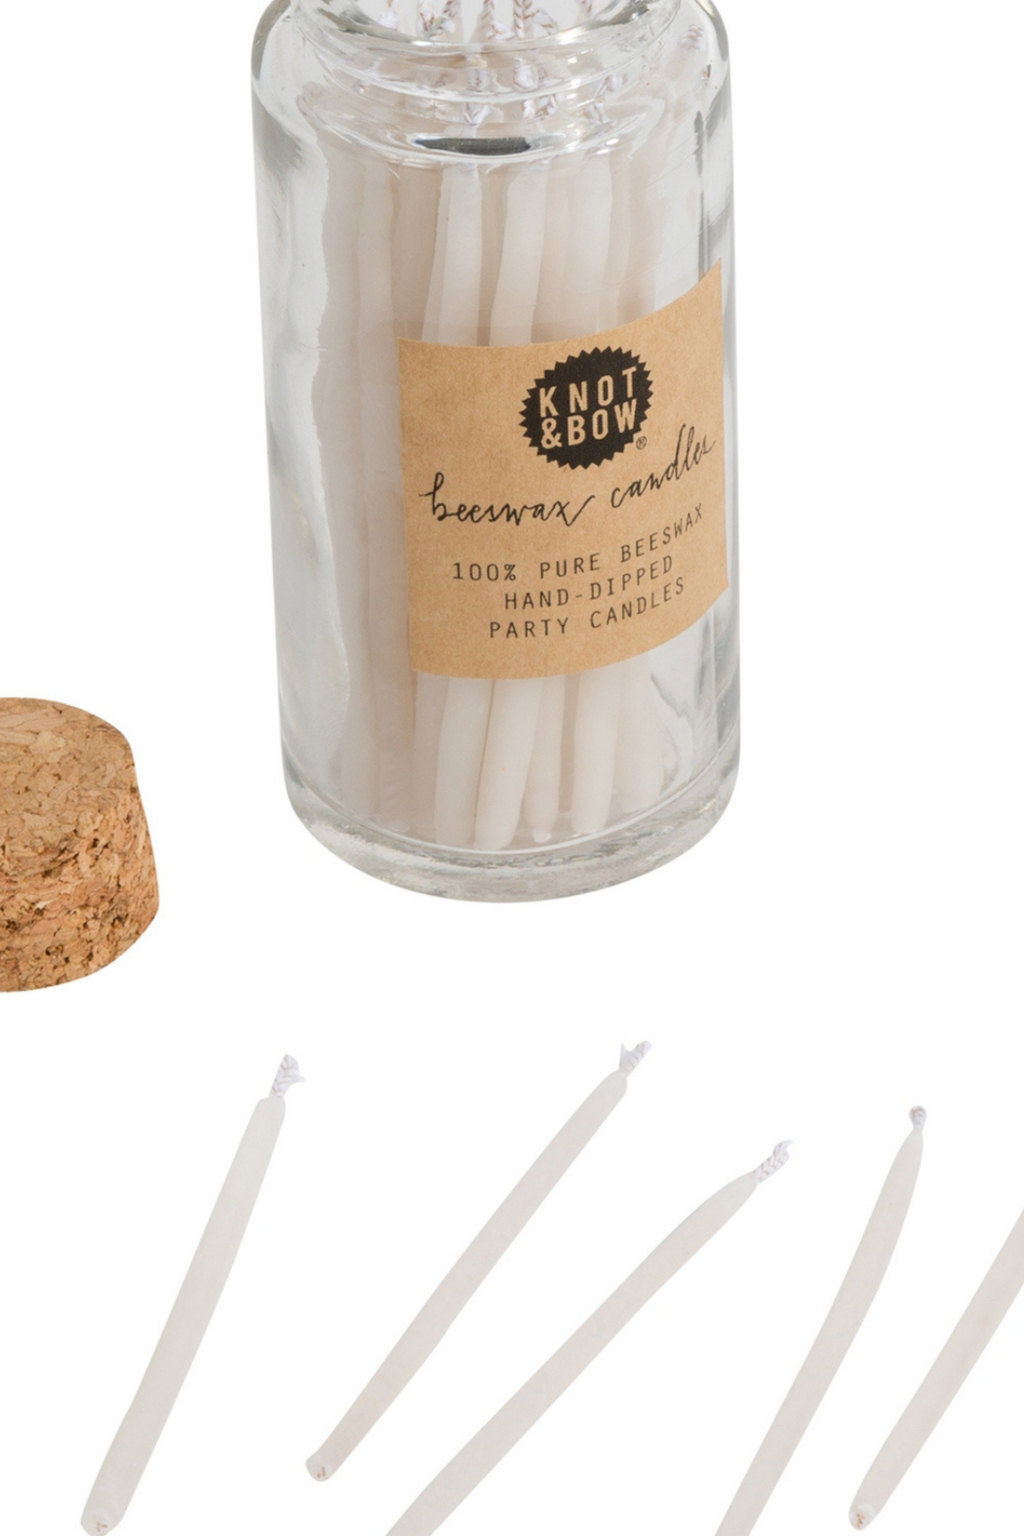 Knot & Bow Beeswax Birthday Candles in Ivory